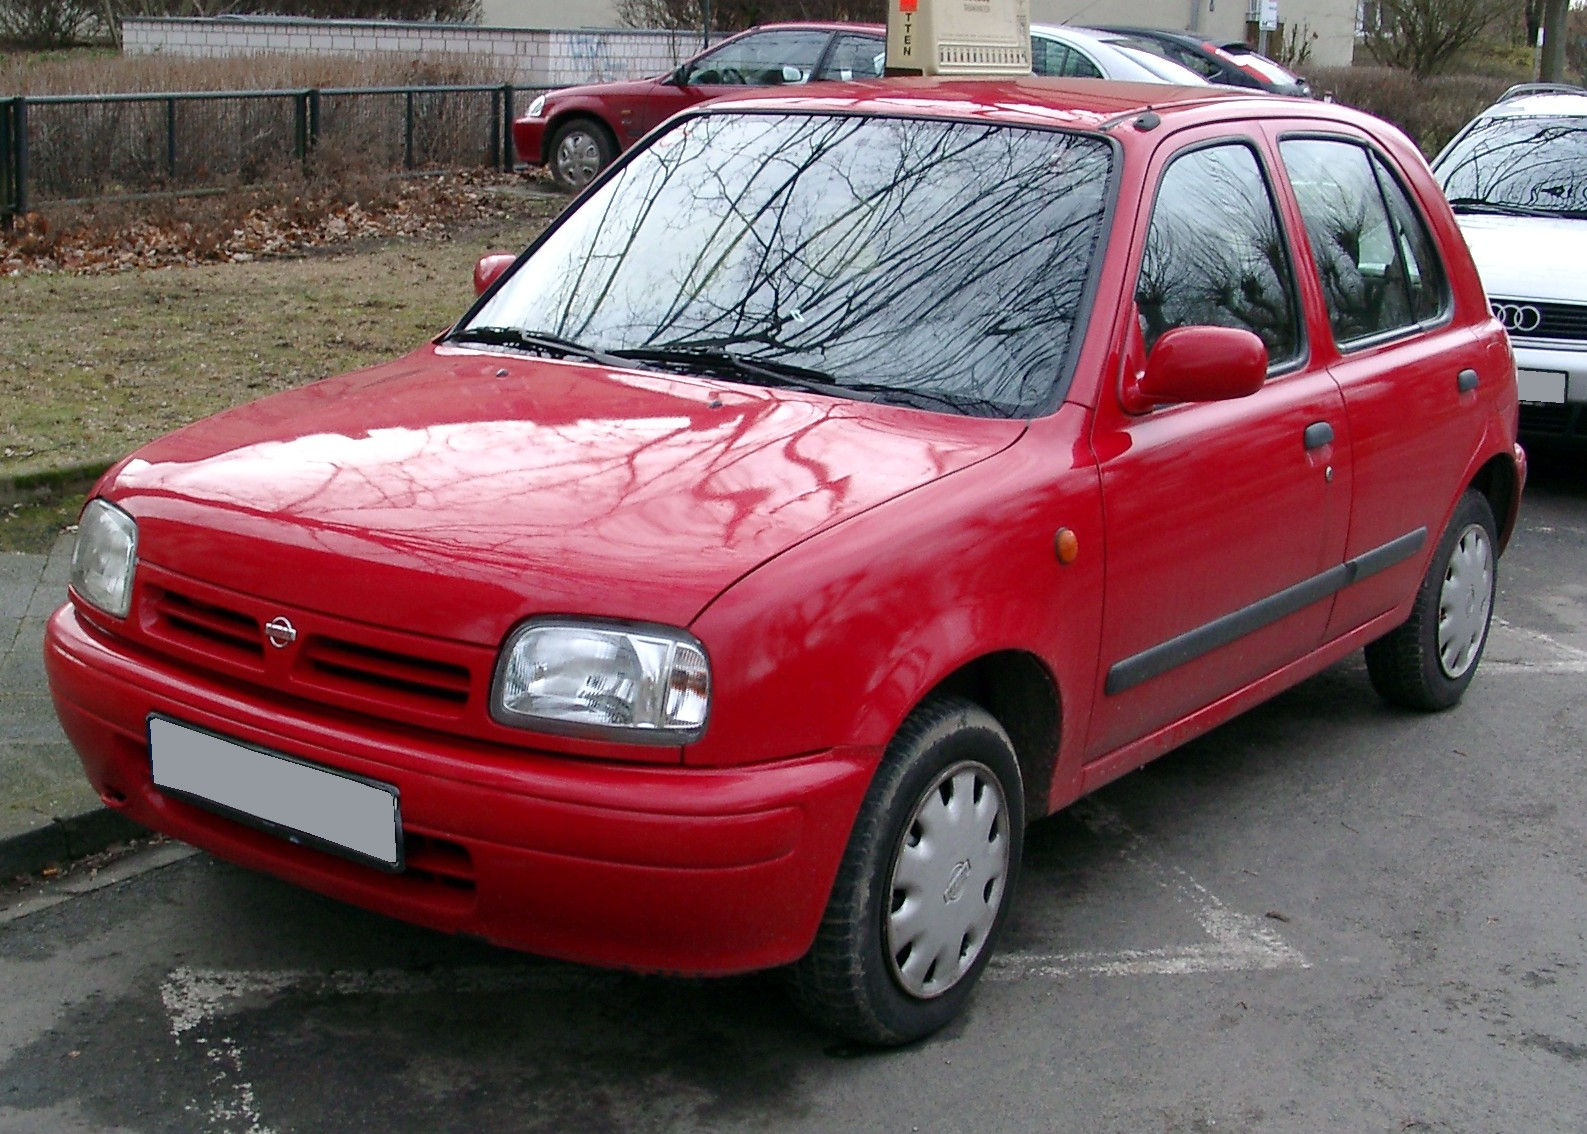 File:Nissan Micra front 20080116.jpg - Wikimedia Commons